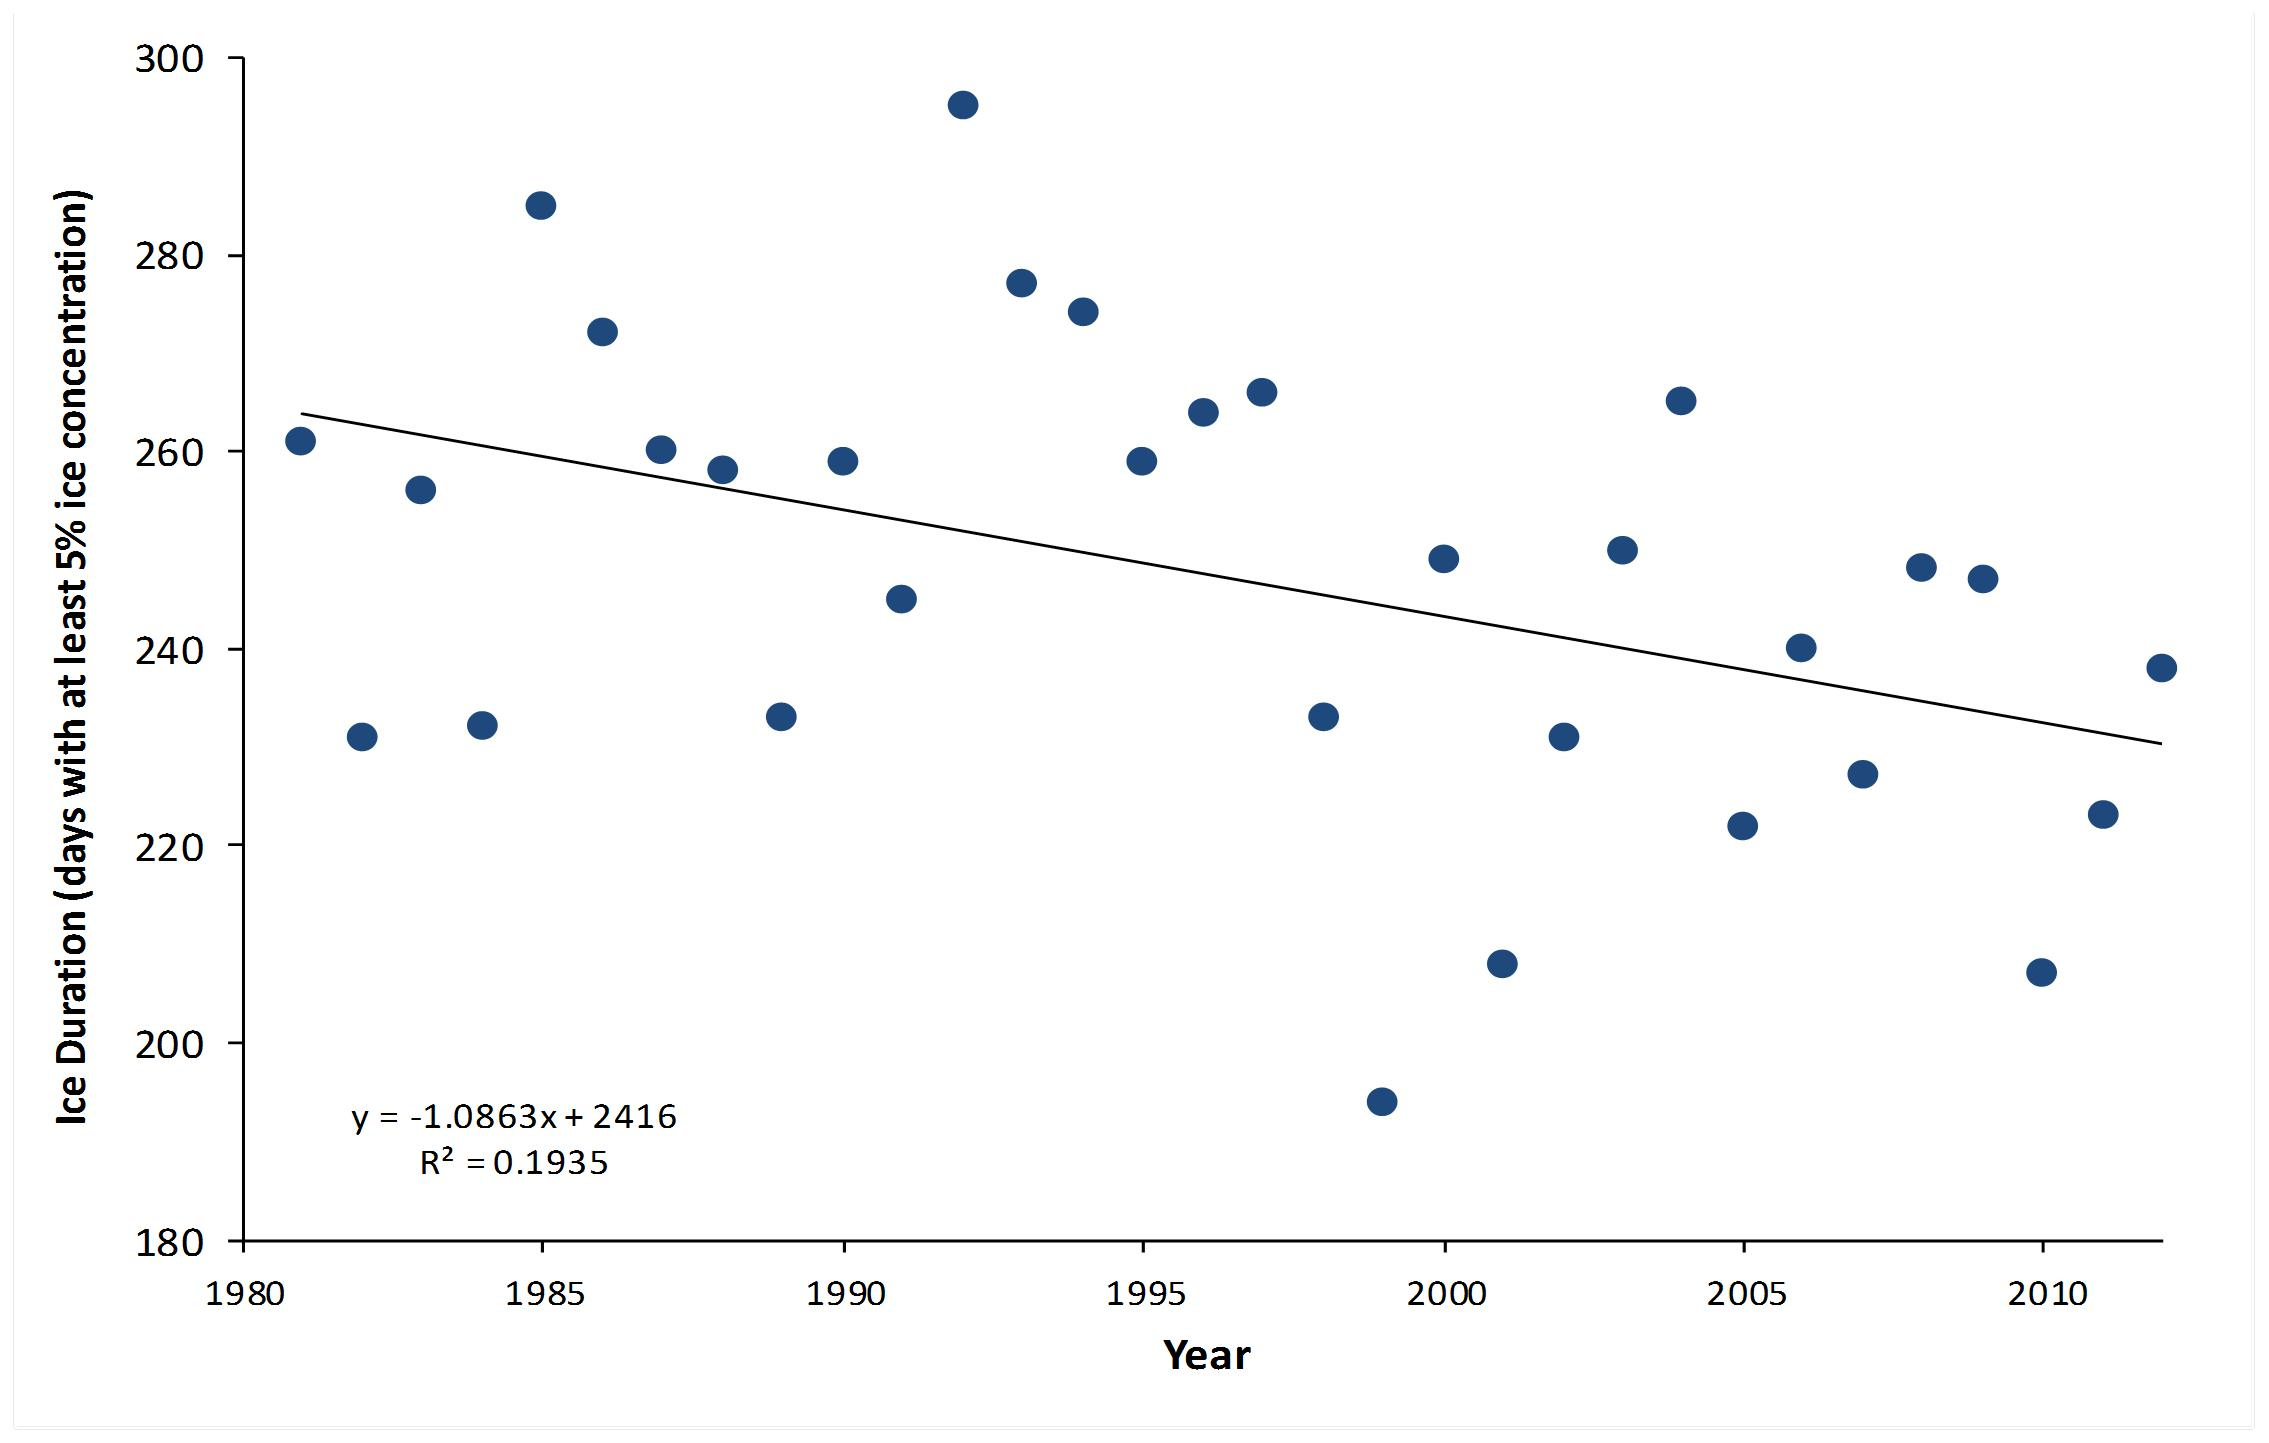 Figure 1. Annual duration of at least 5% ice cover on southern Hudson Bay and James Bay, 1981-2012 (analysis by M. Obbard and K. Middel (OMNRF) based on satellite data from Cavalieri et al. 1996, updated yearly).